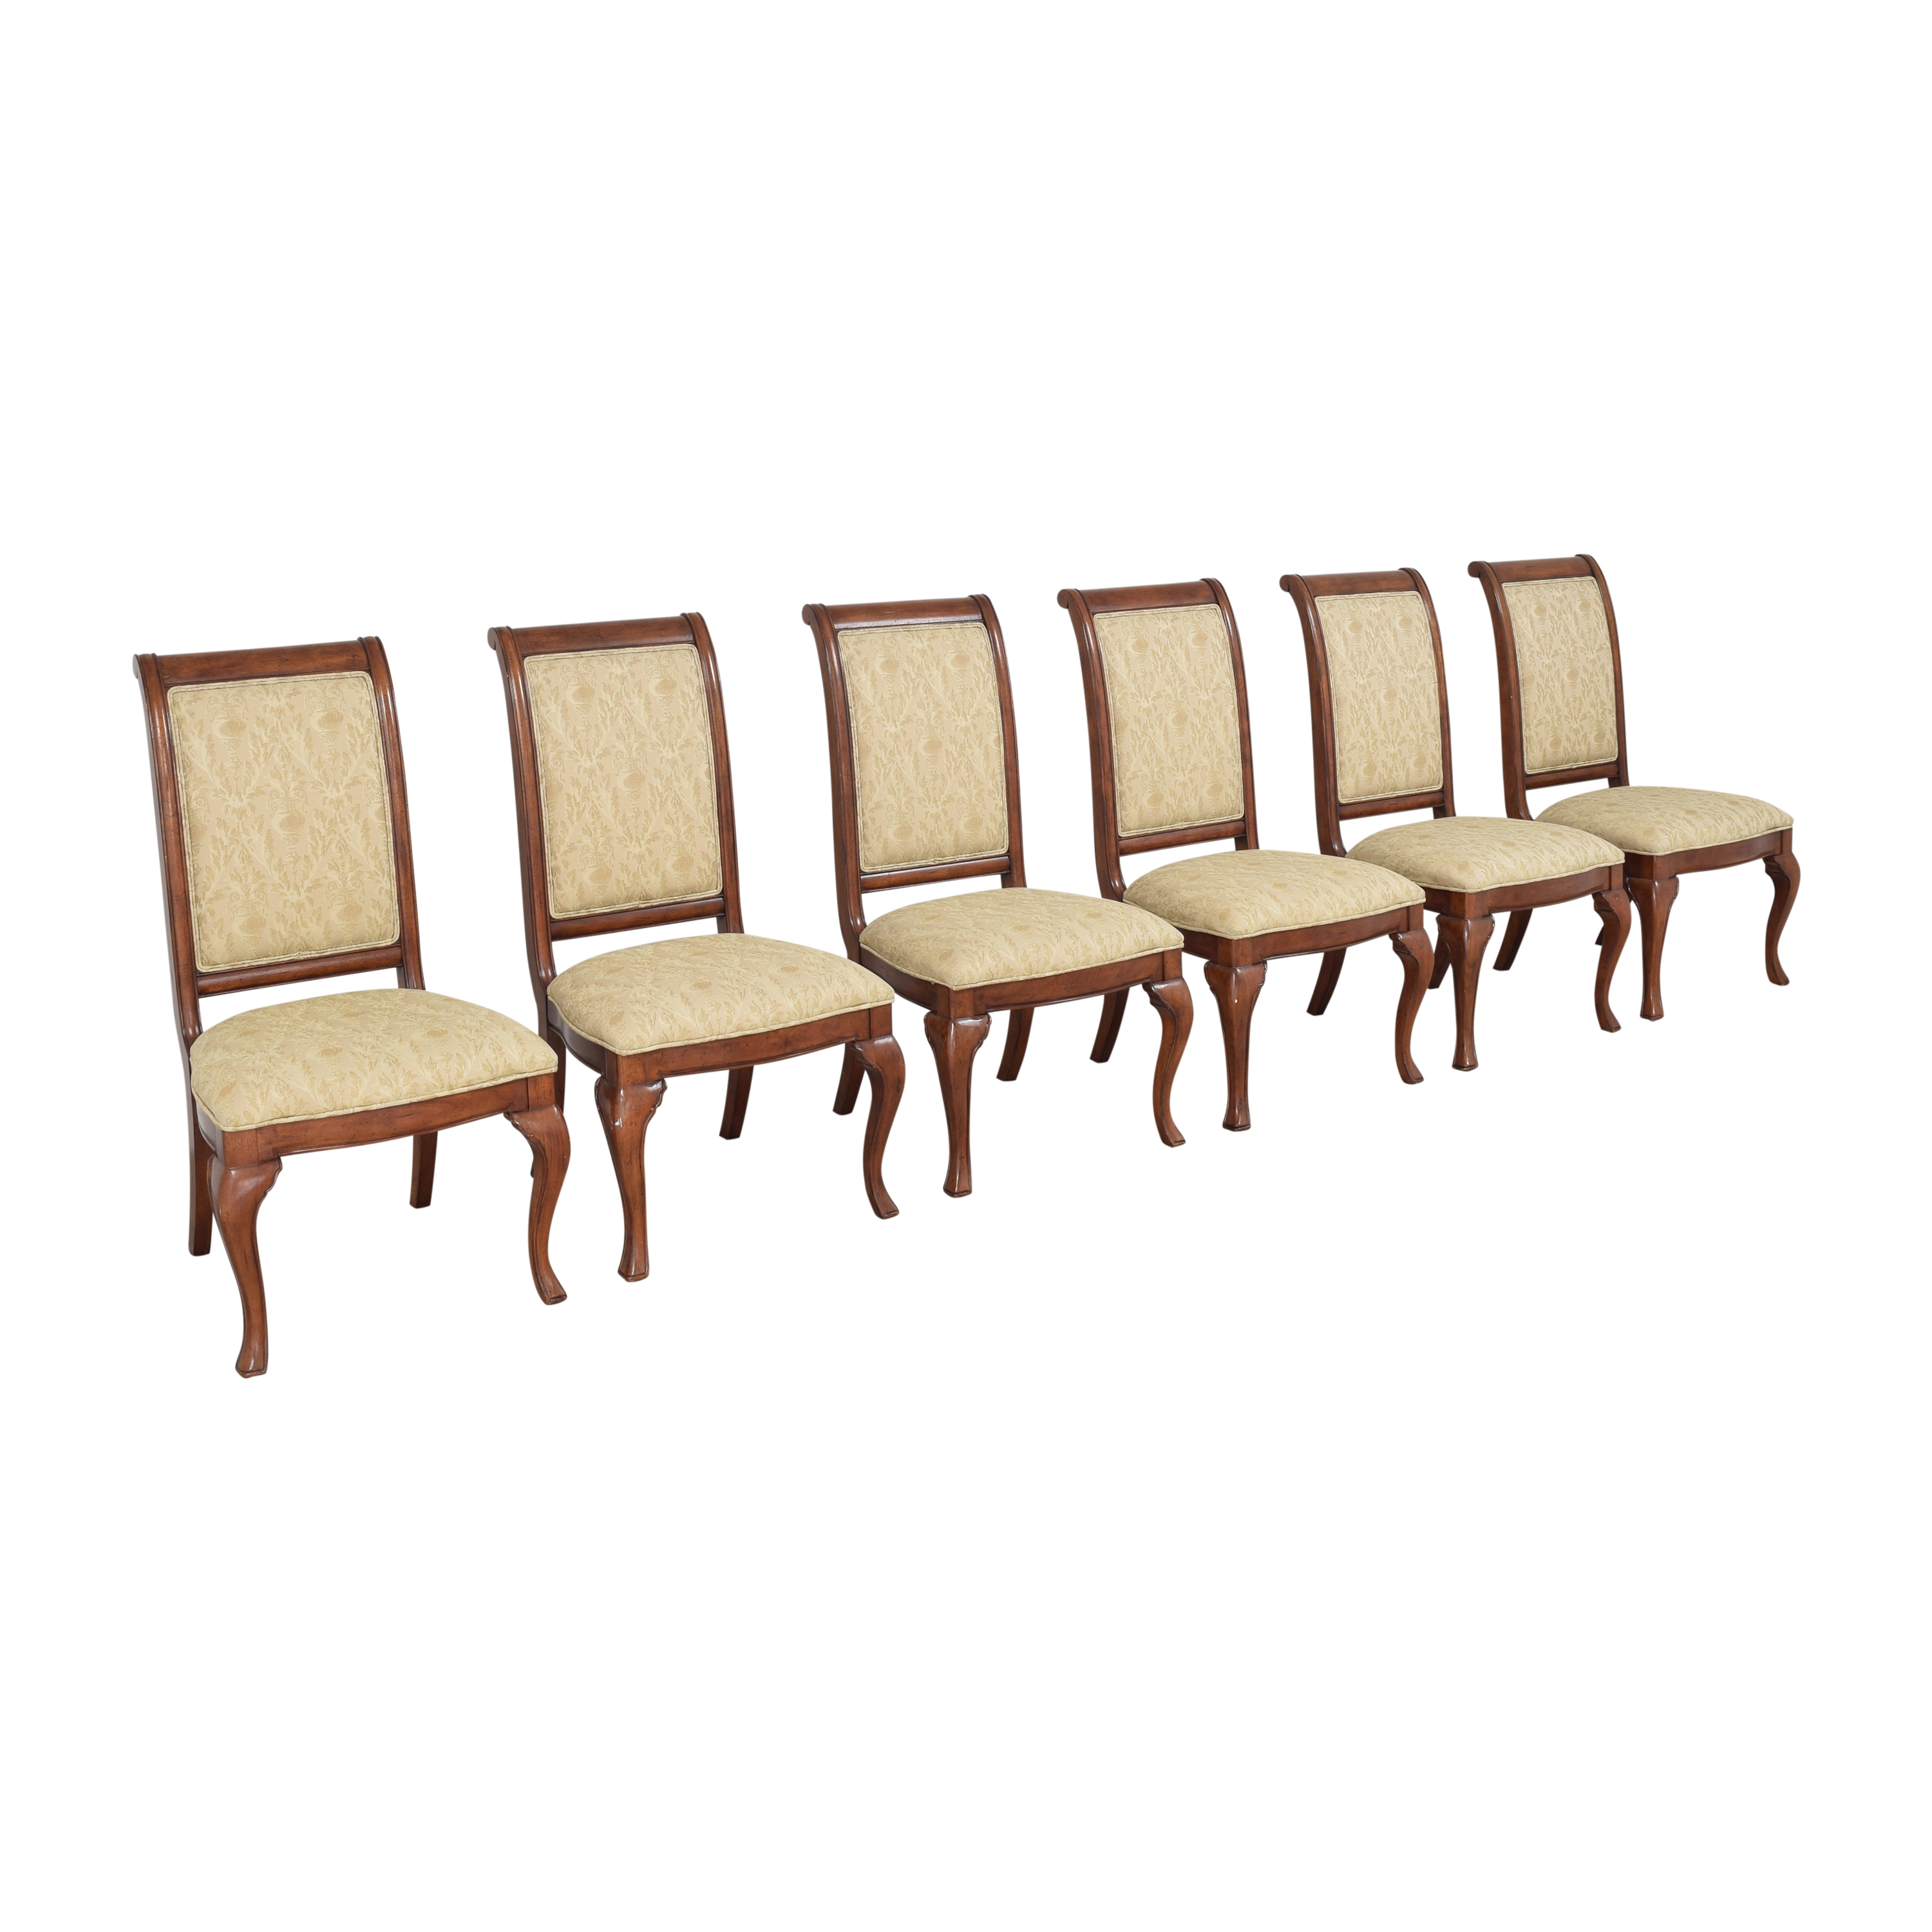 Thomasville Thomasville Upholstered Dining Chairs  price